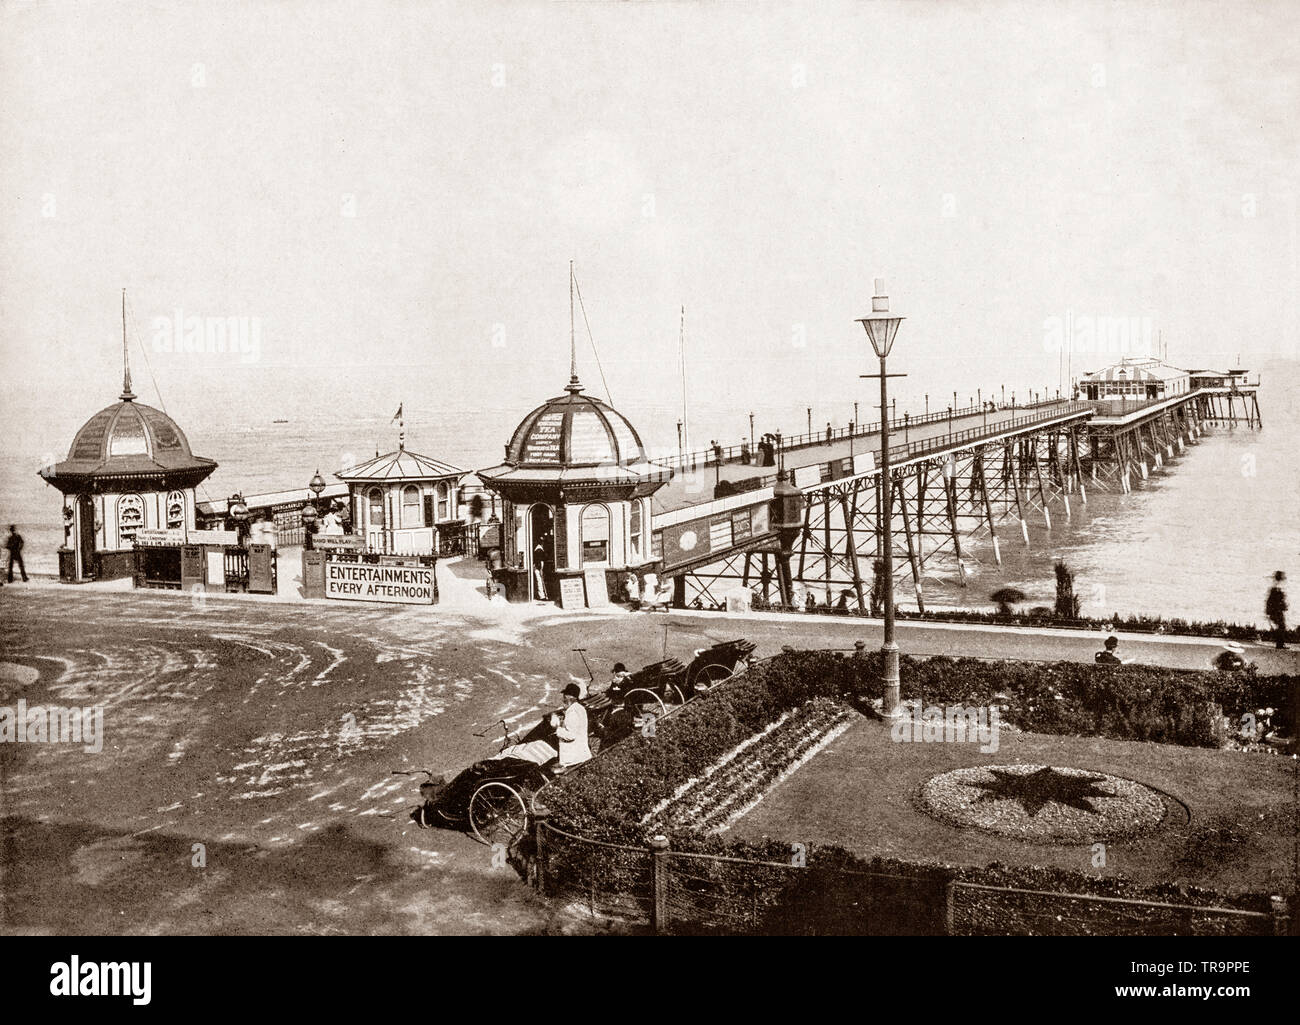 A 19th Century view of  Eastbourne Pleasure Pier in East Sussex, on the south coast of England. Roughly 300 metres (1000 ft) long, it was opened by Lord Edward Cavendish on 13 June 1870, although it was not actually completed until two years later. On New Year's Day 1877 the landward half was swept away in a storm. It was rebuilt at a higher level, creating a drop towards the end of the pier. The pier is effectively built on stilts that rest in cups on the sea-bed allowing the whole structure to move during rough weather. - Stock Image